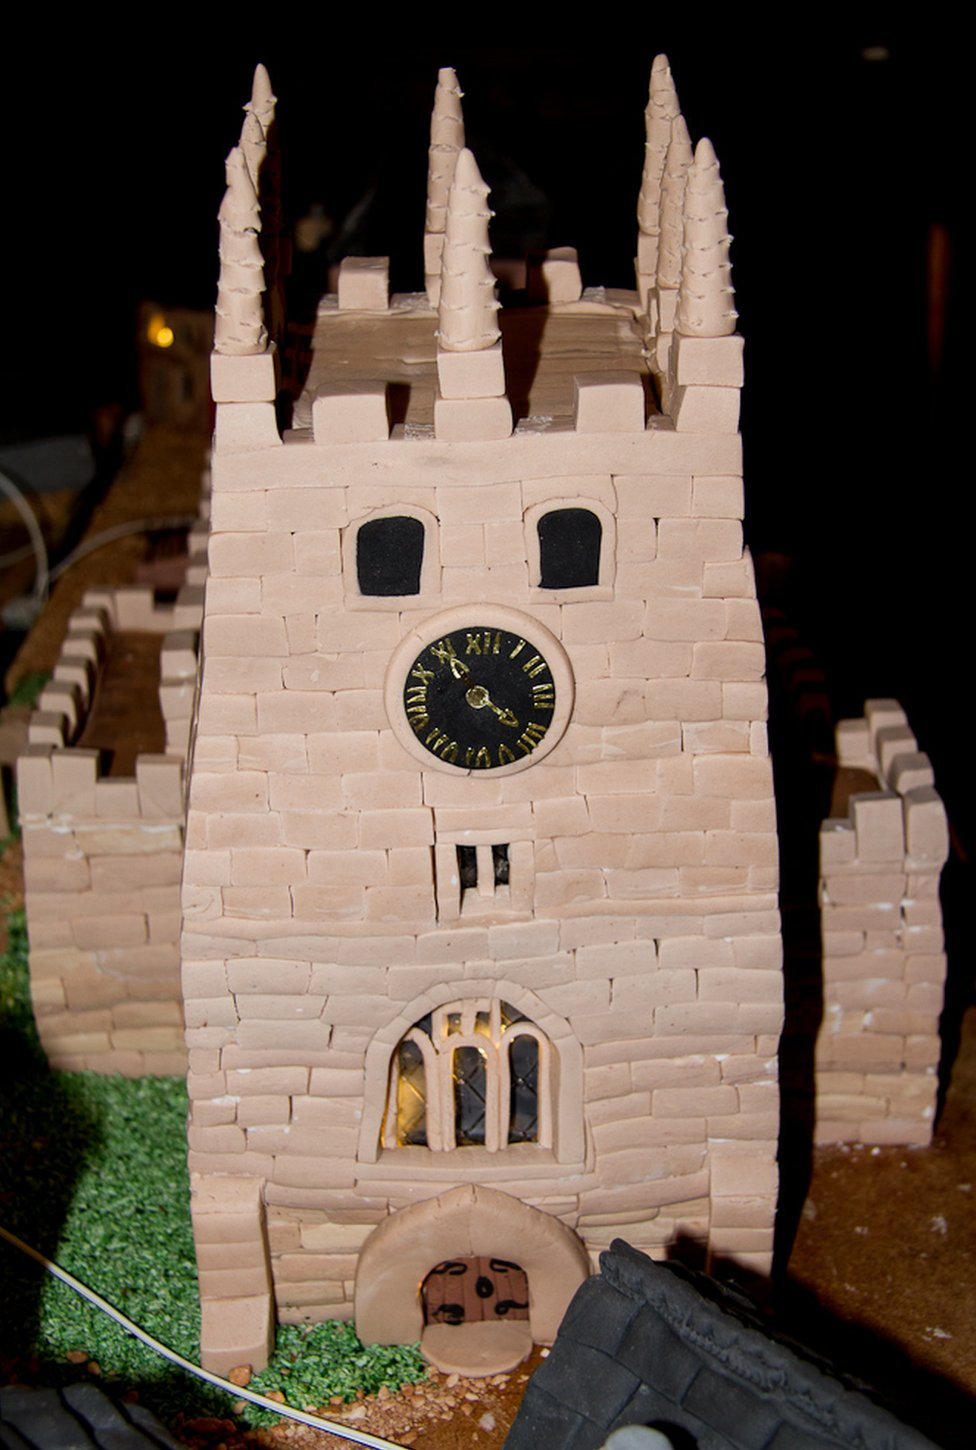 Church made from cake